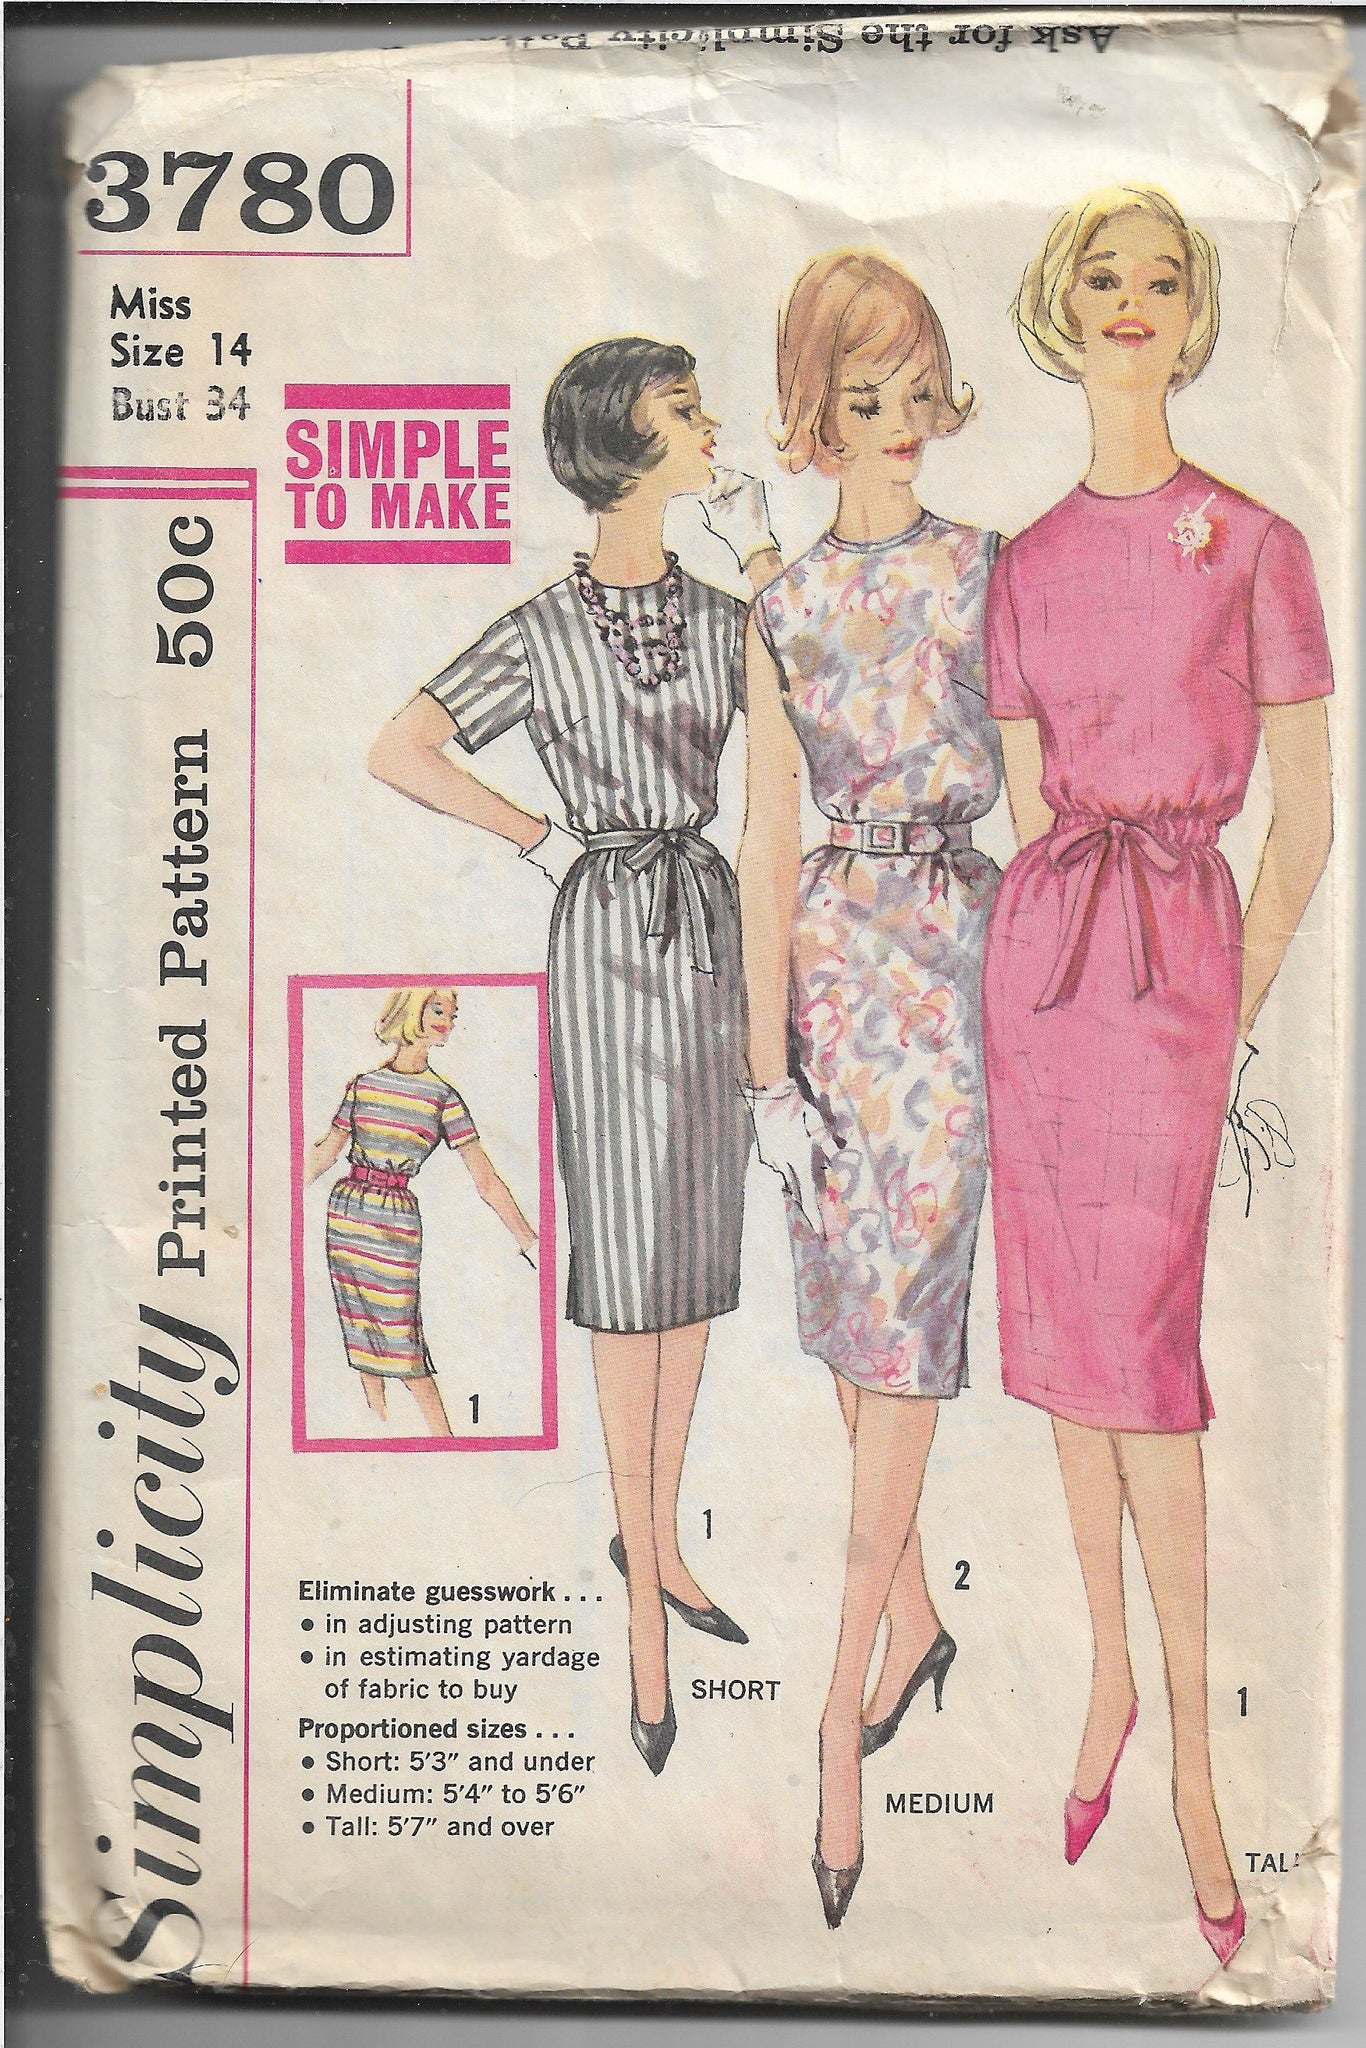 Simplicity 3780 Vintage Sewing Pattern 1960s Ladies Slim Dress - VintageStitching - Vintage Sewing Patterns